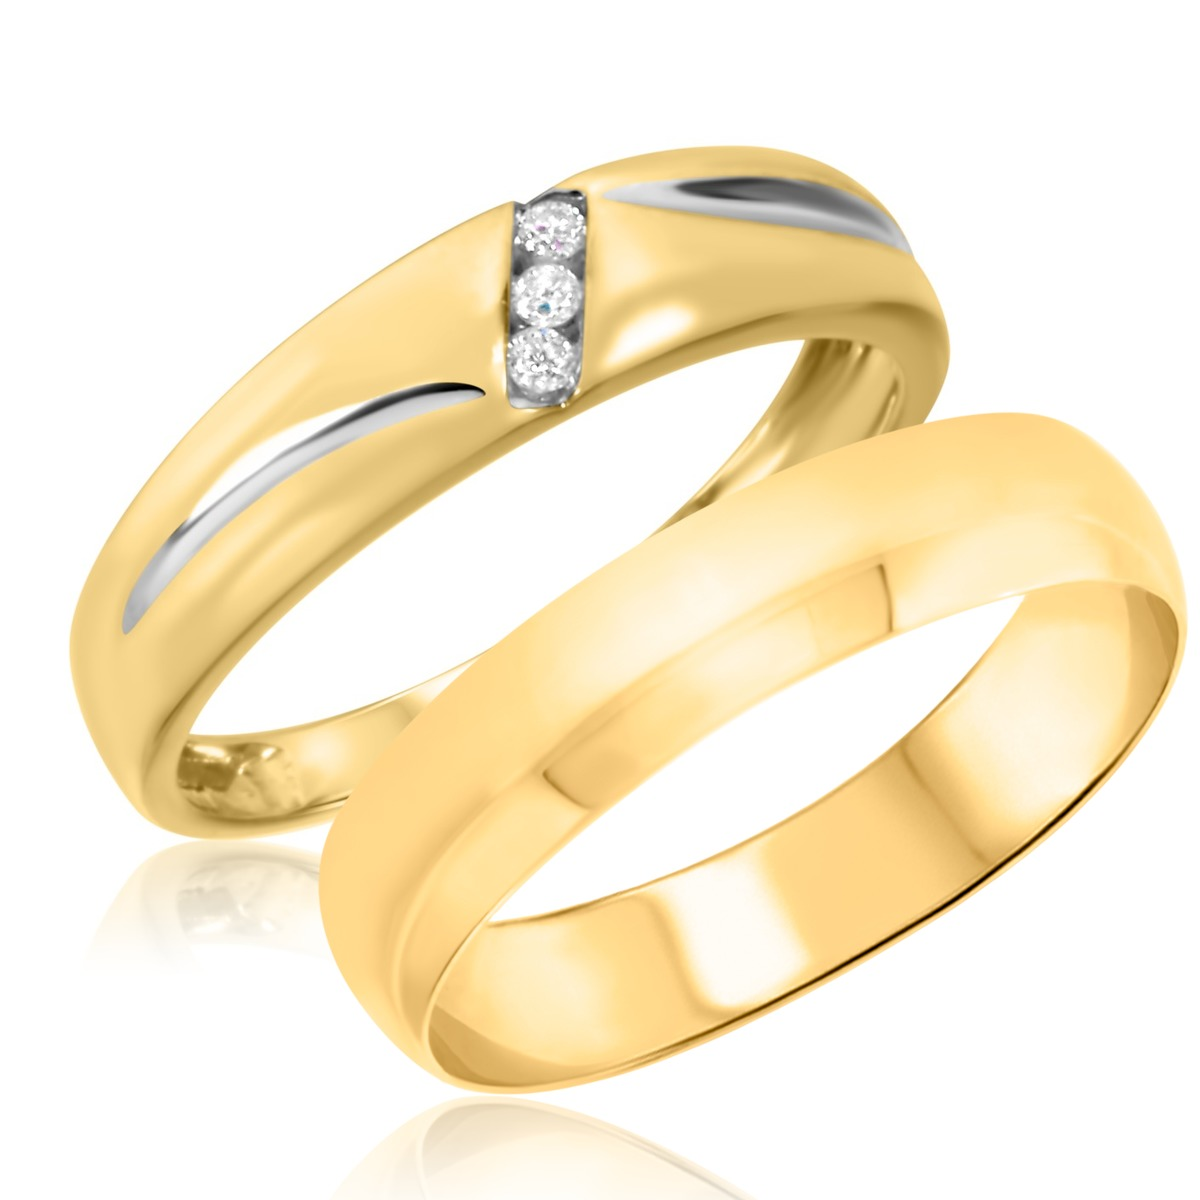 1/25 Carat T.W. Round Cut Diamond His and Hers Wedding Band Set 10K Yellow Gold